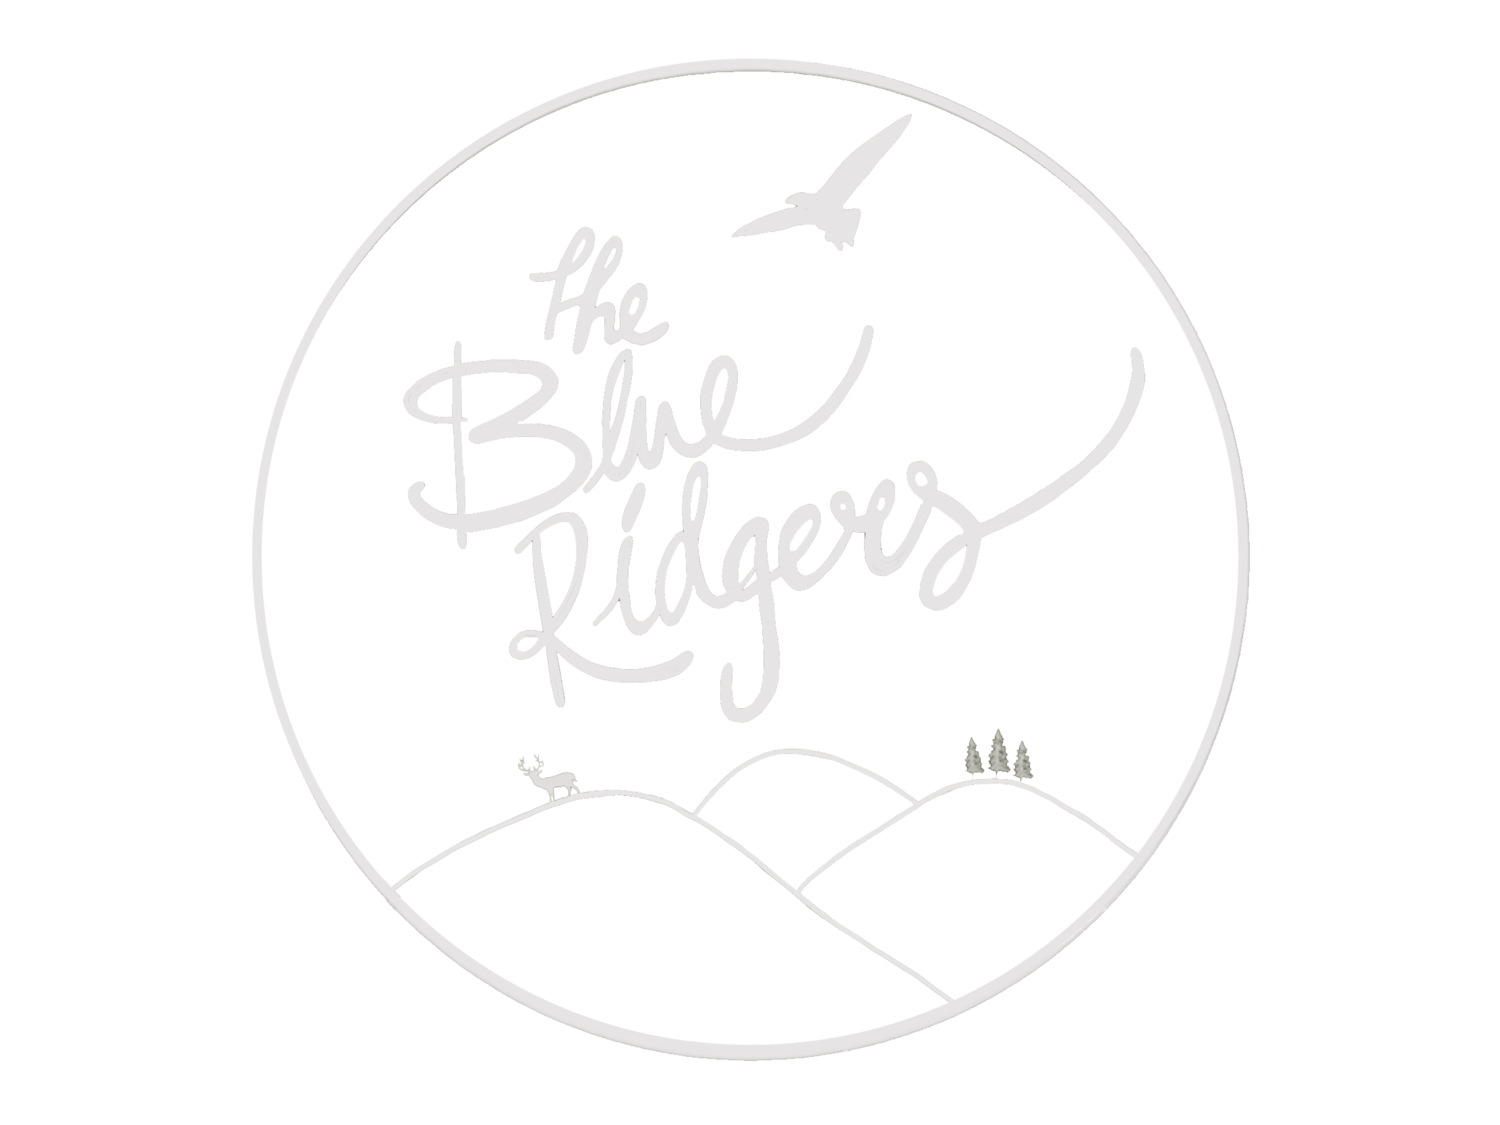 The Blue Ridgers